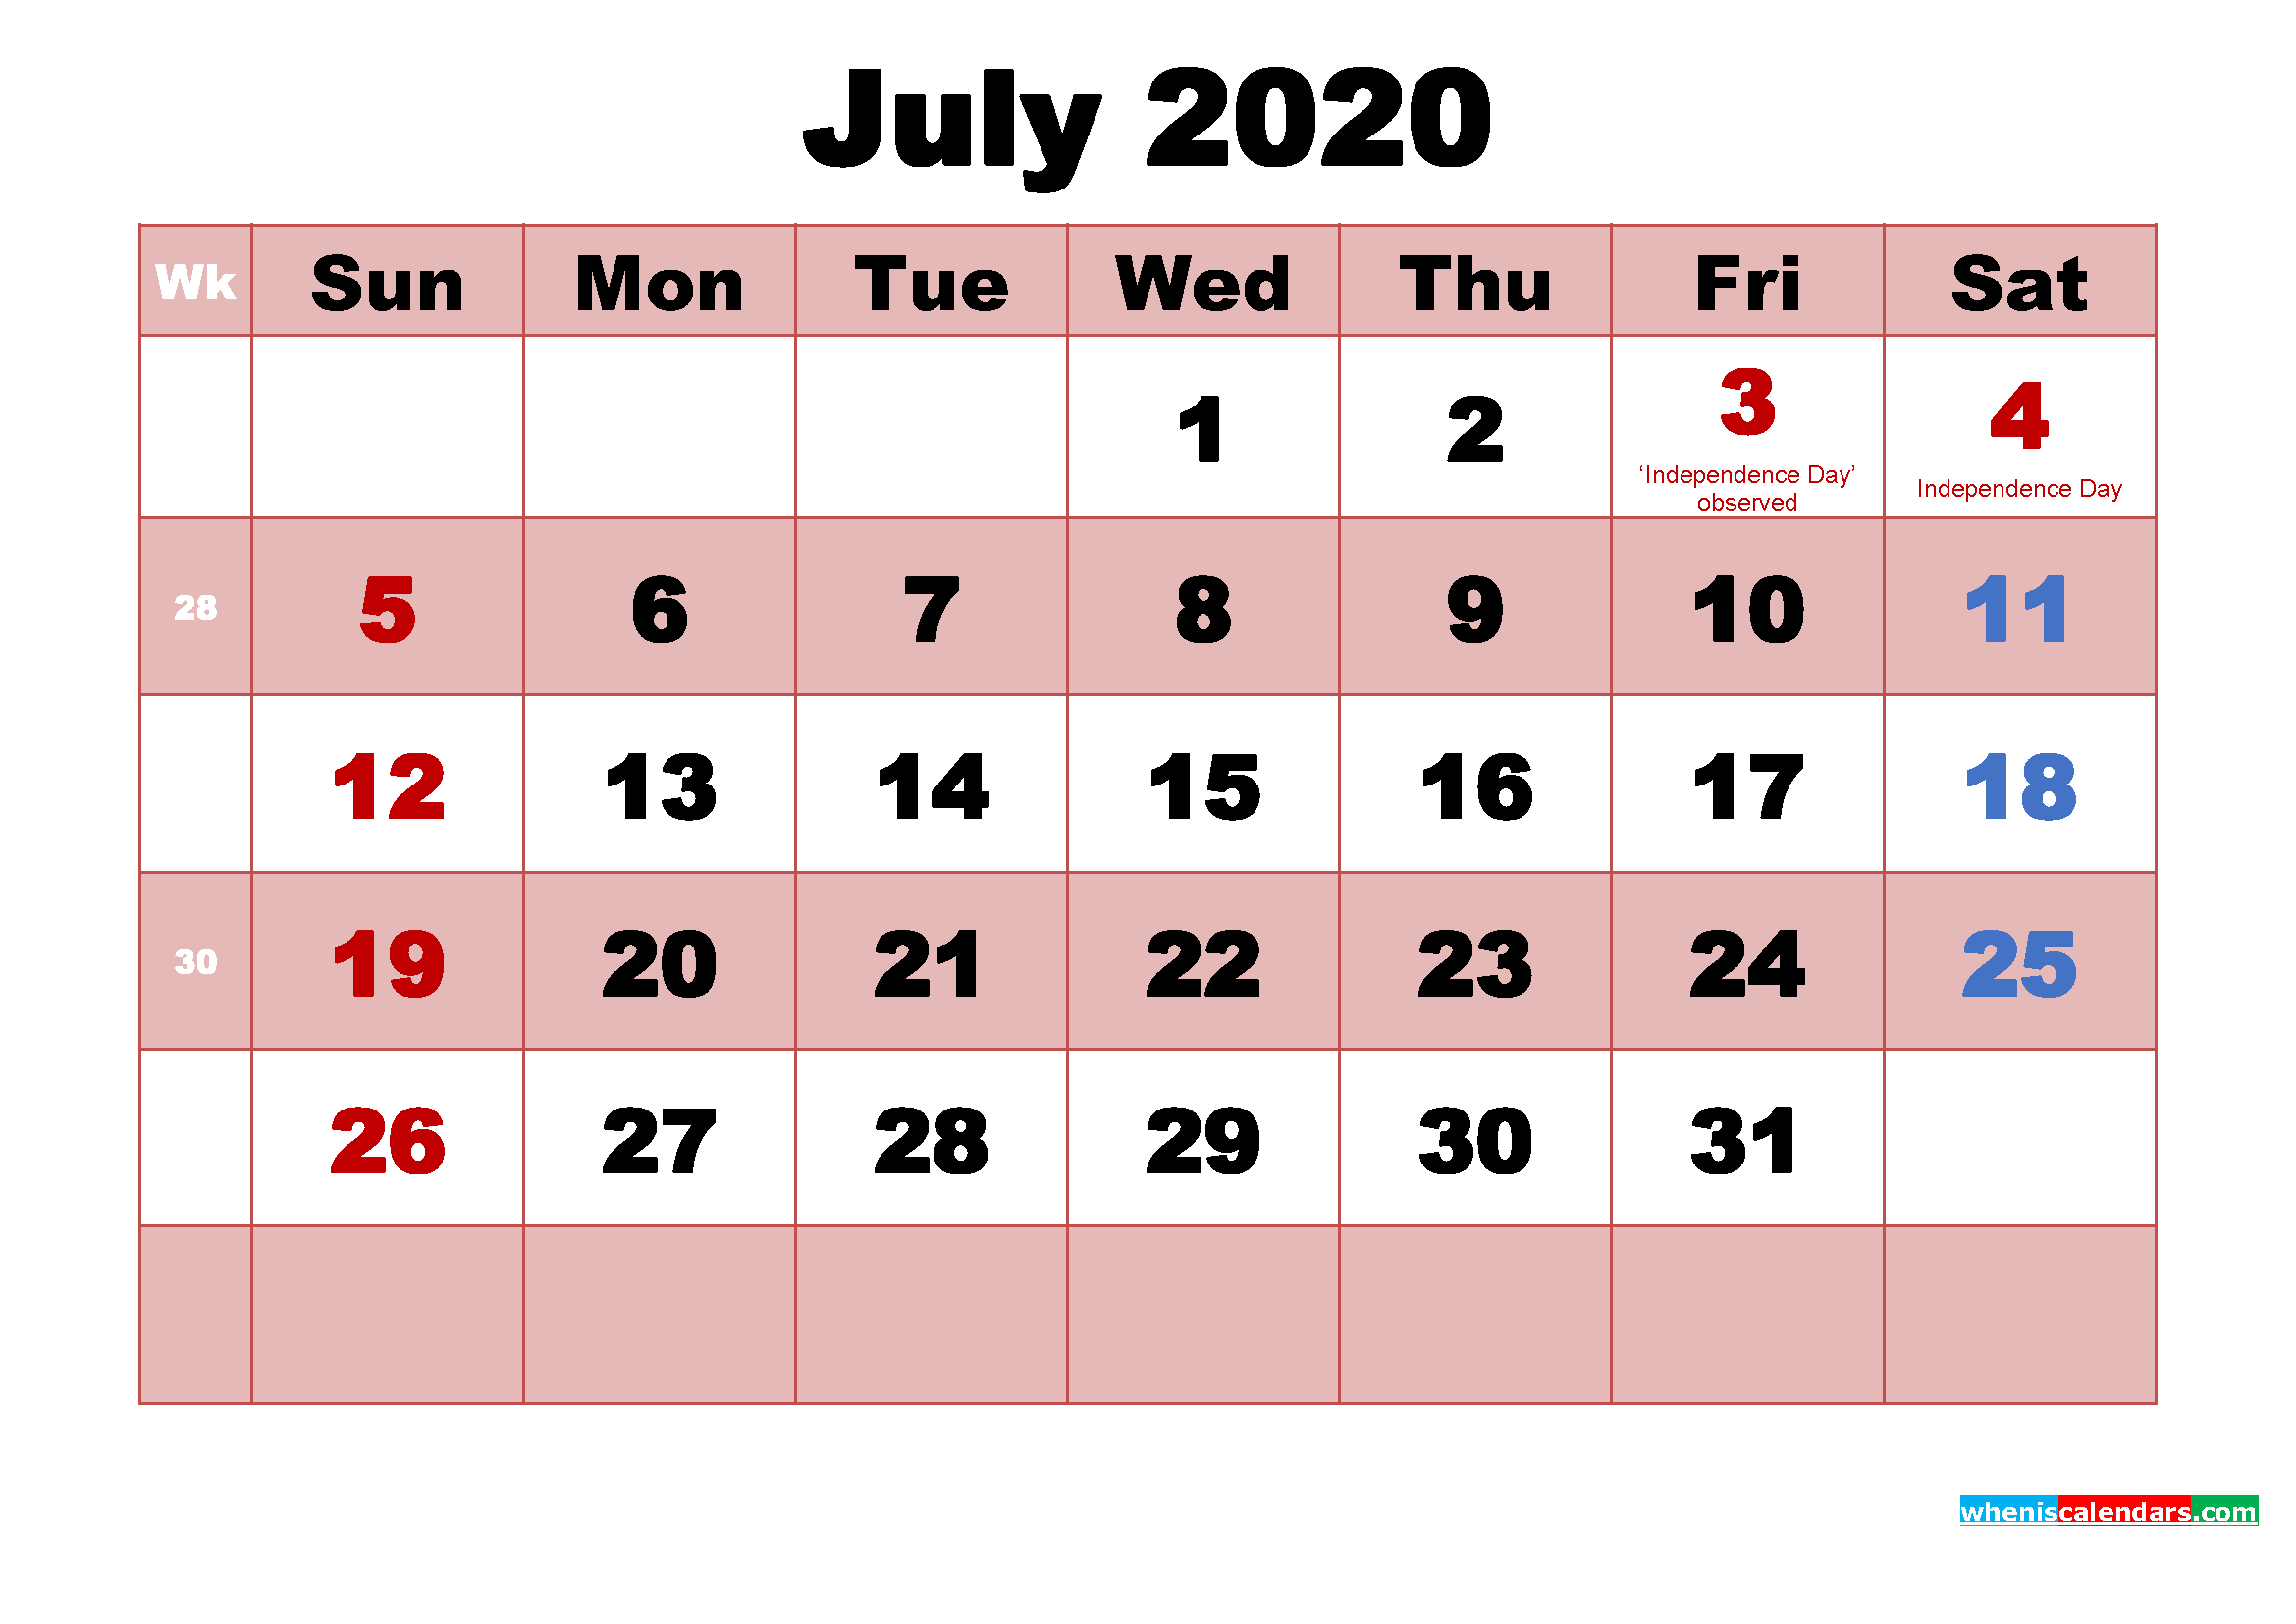 July 2020 Calendar with Holidays Wallpaper